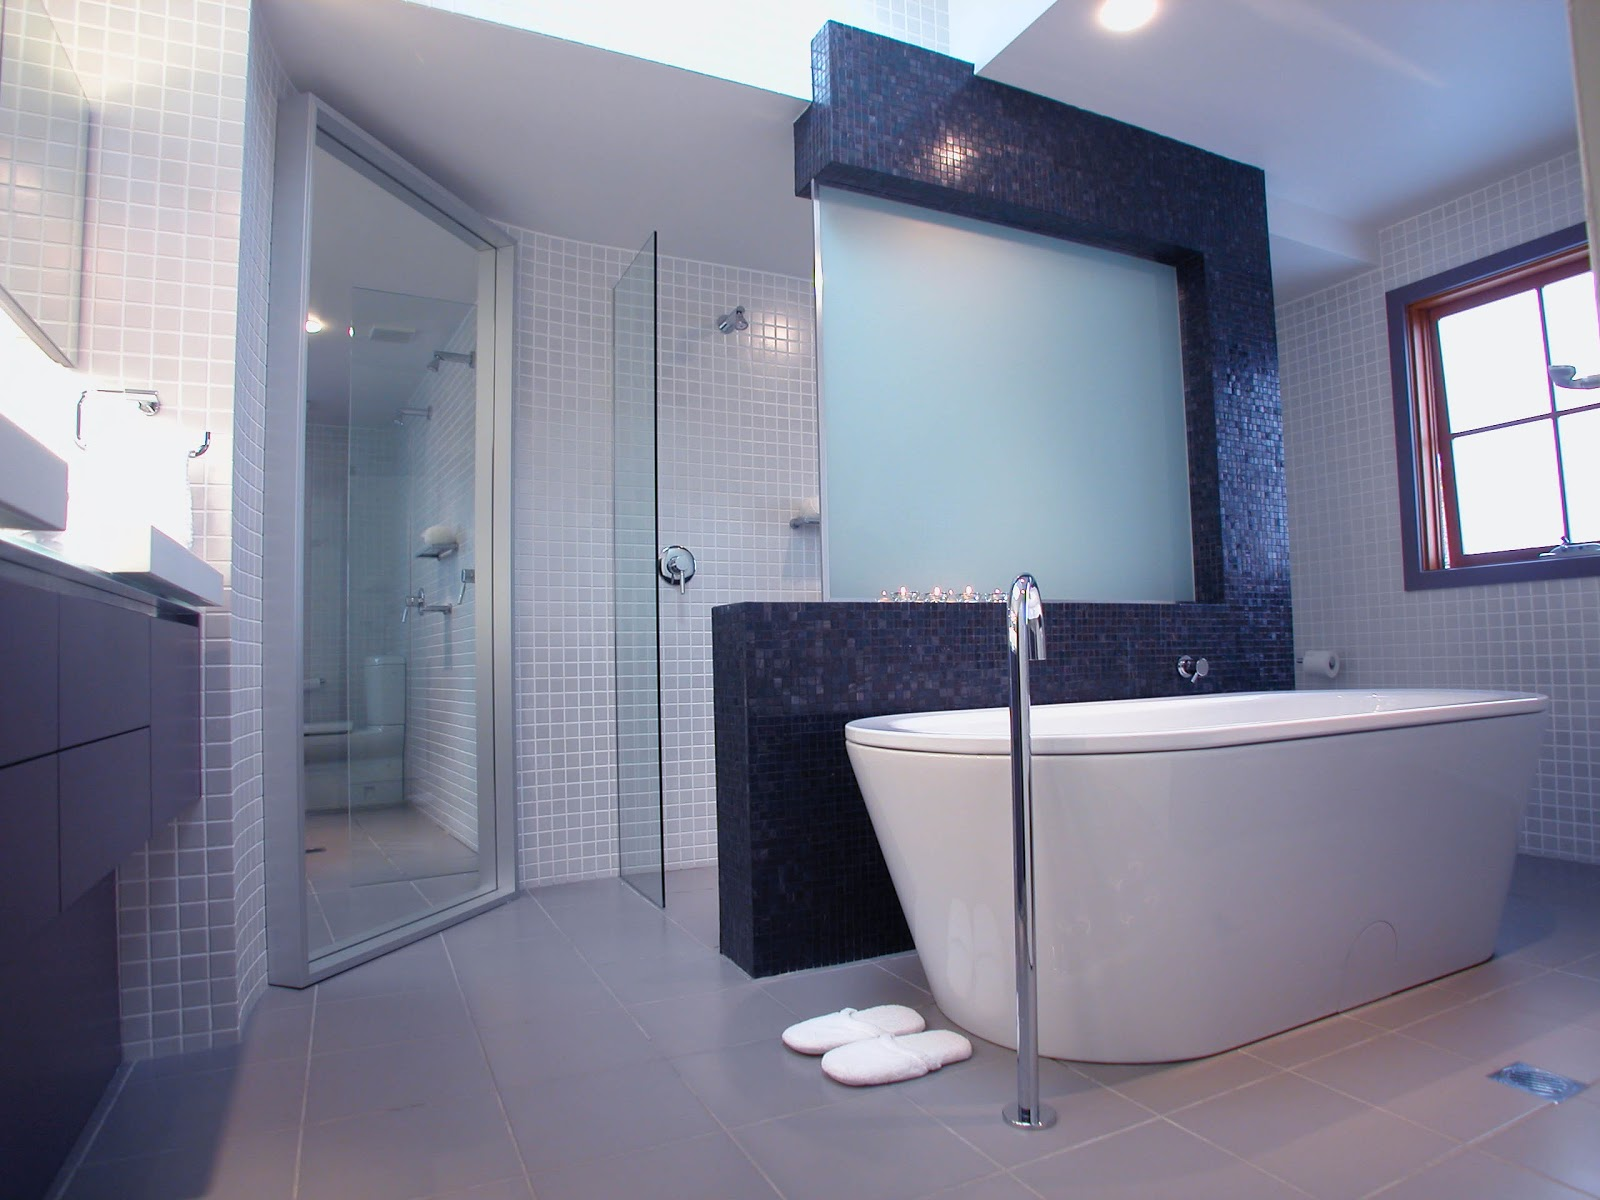 Minosa modern main bathroom designed to share - Bathroom design ...